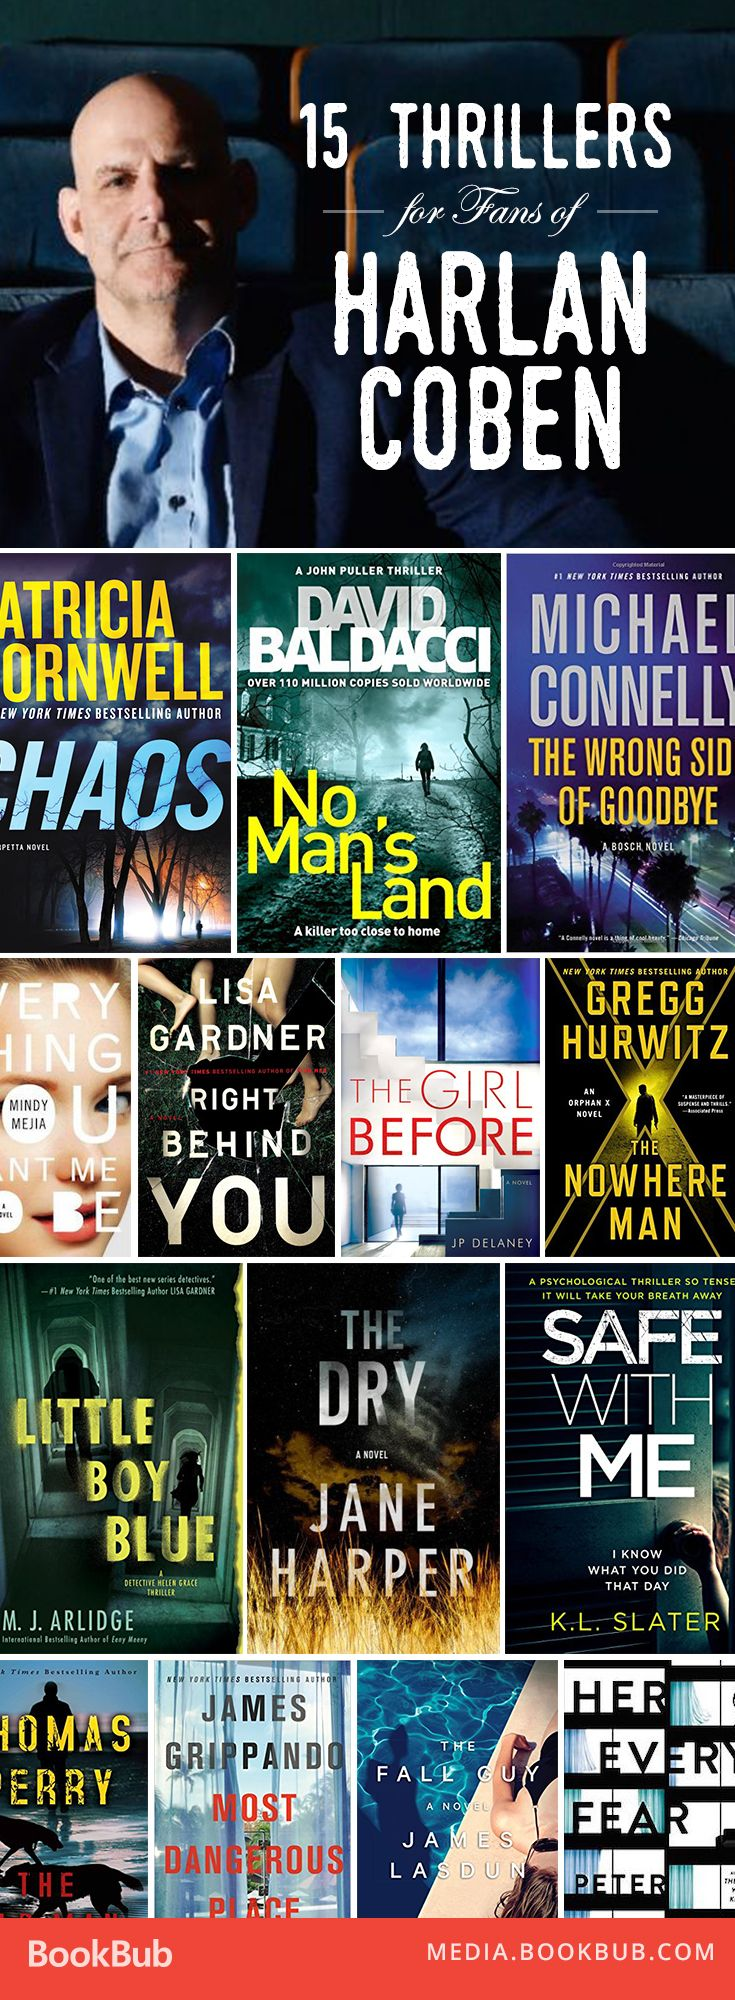 Calling all fans of Harlan Coben! Here are 15 gripping thrillers to read this year.